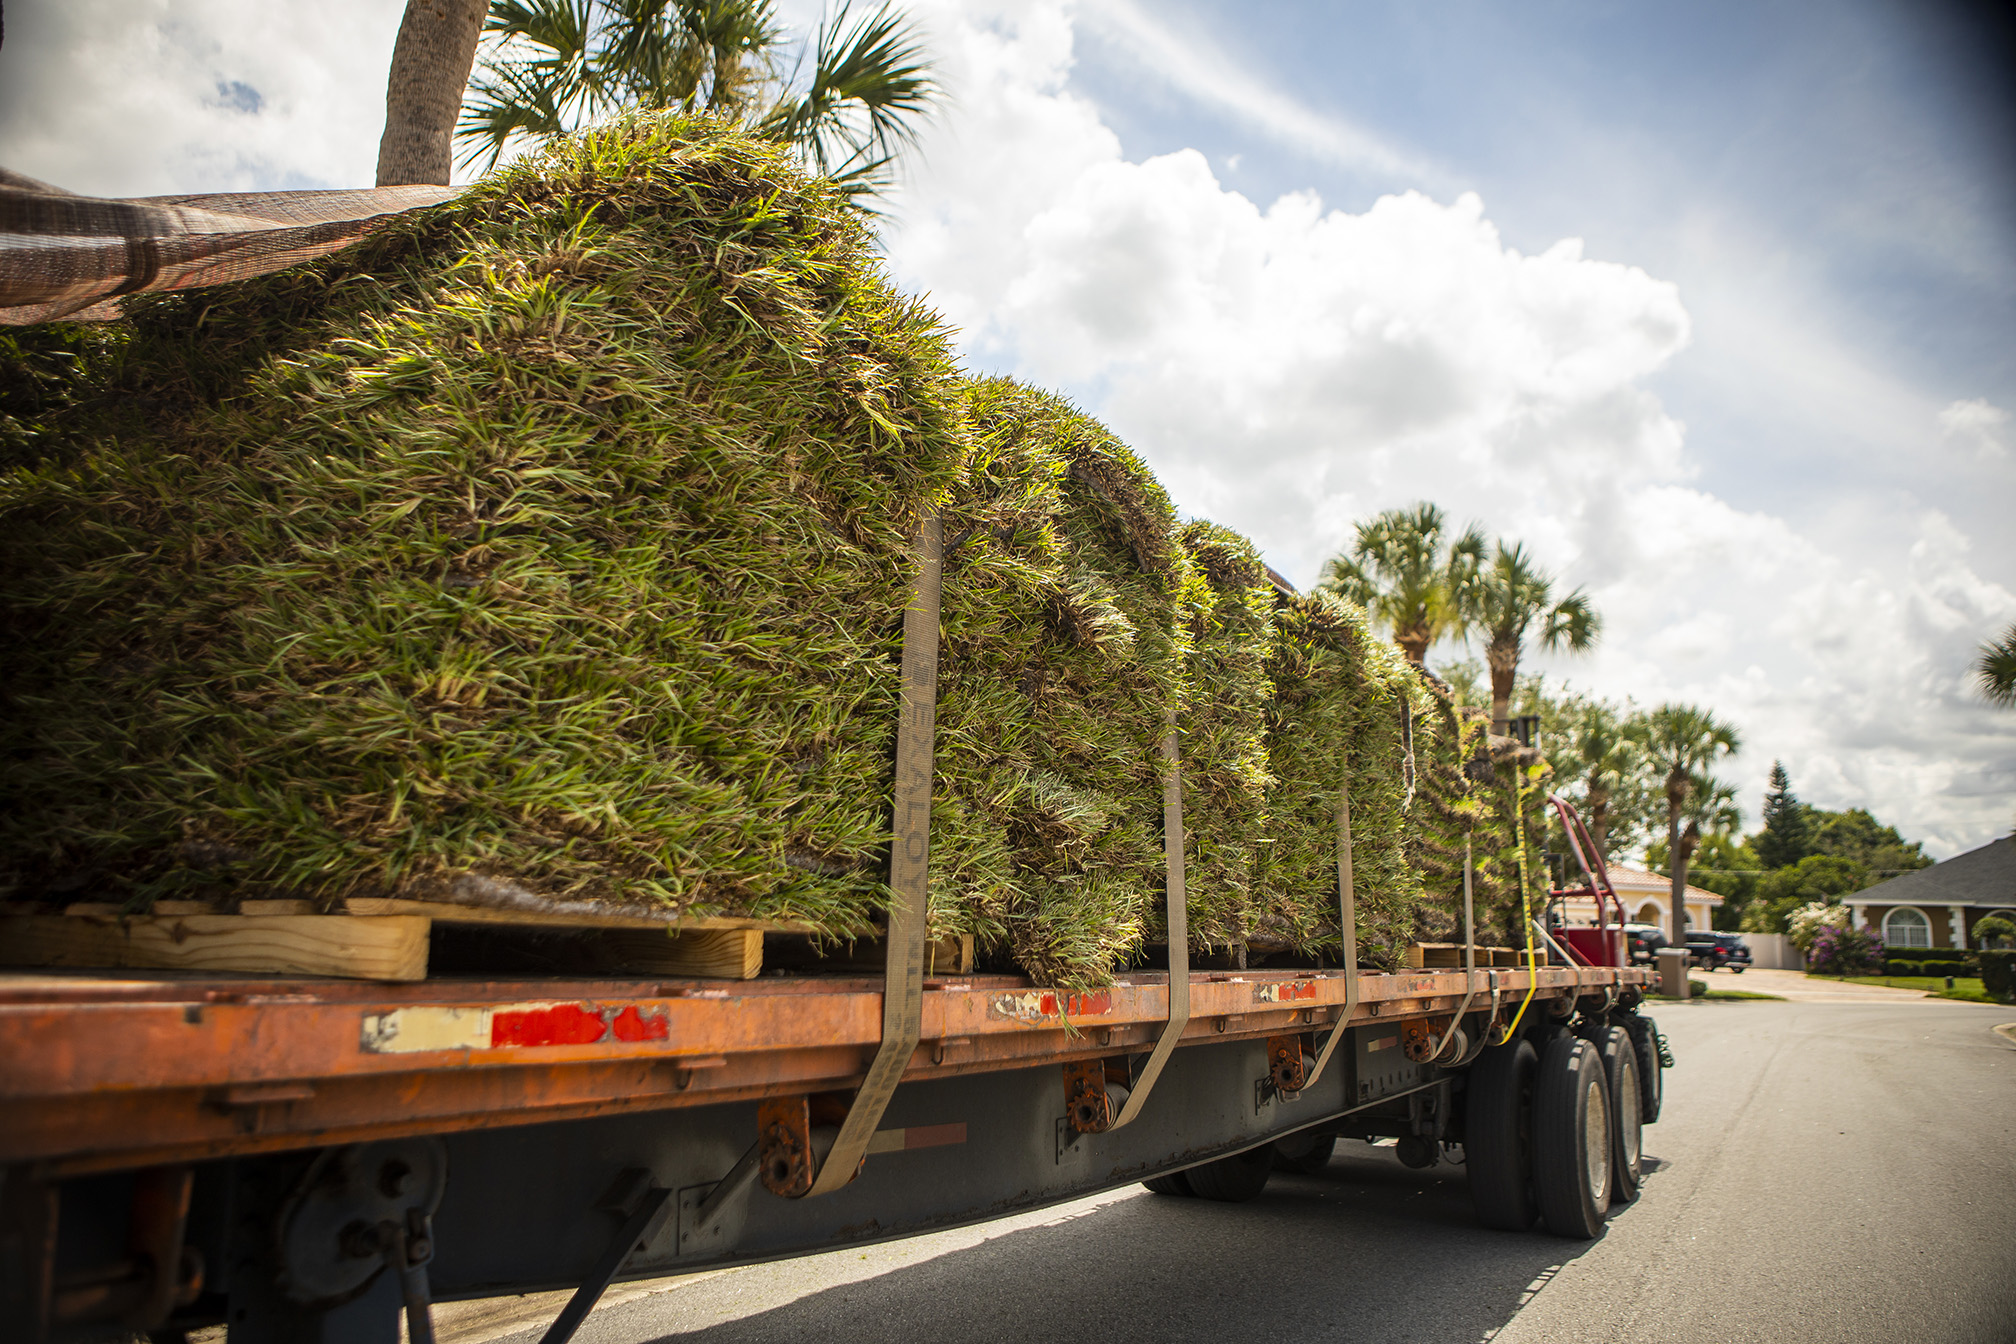 Sod bring delivered in Orlando, FL